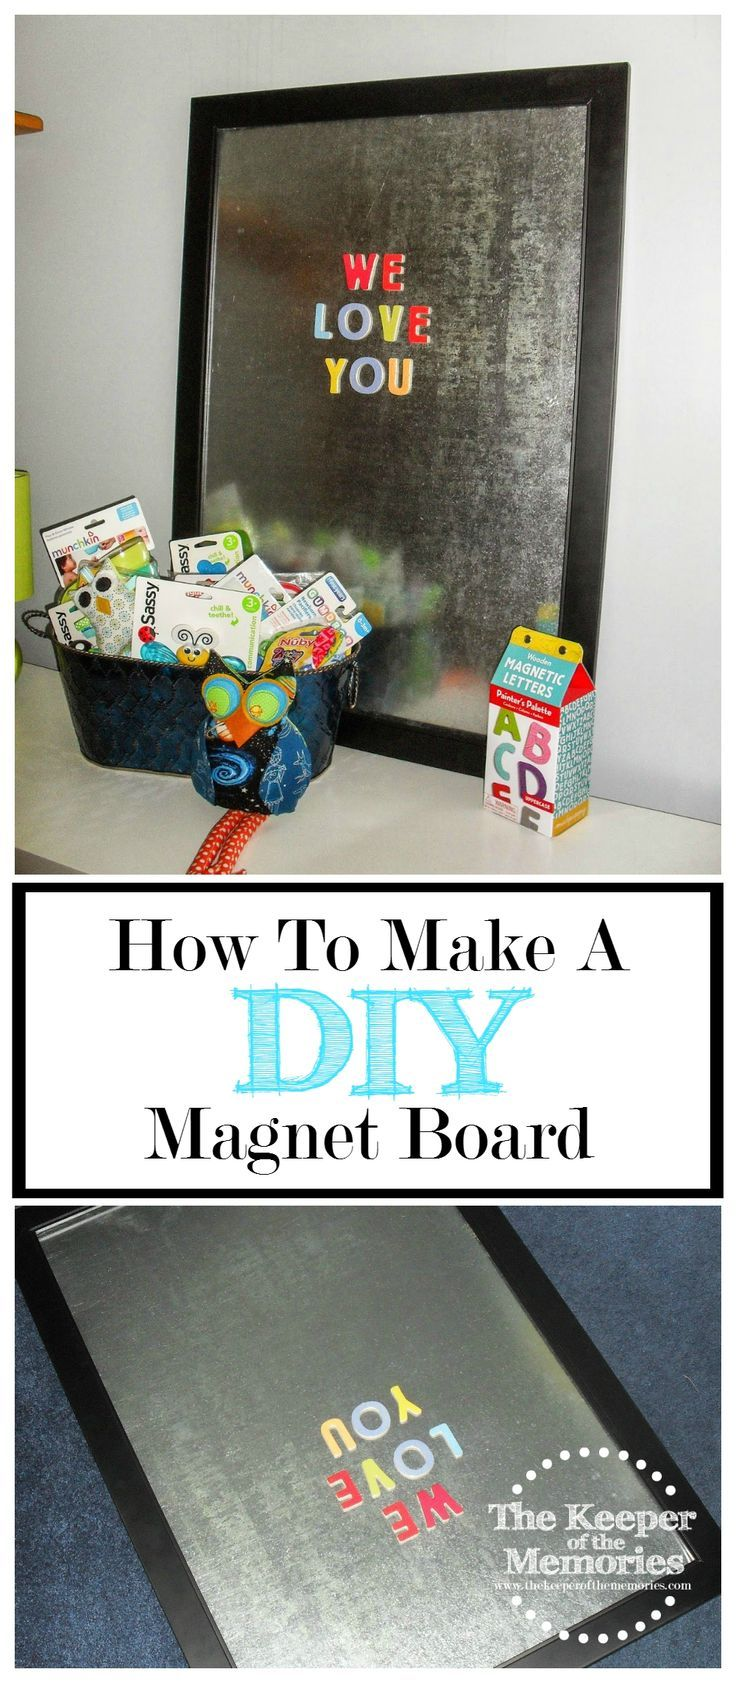 25+ unique Diy magnetic board ideas on Pinterest ...